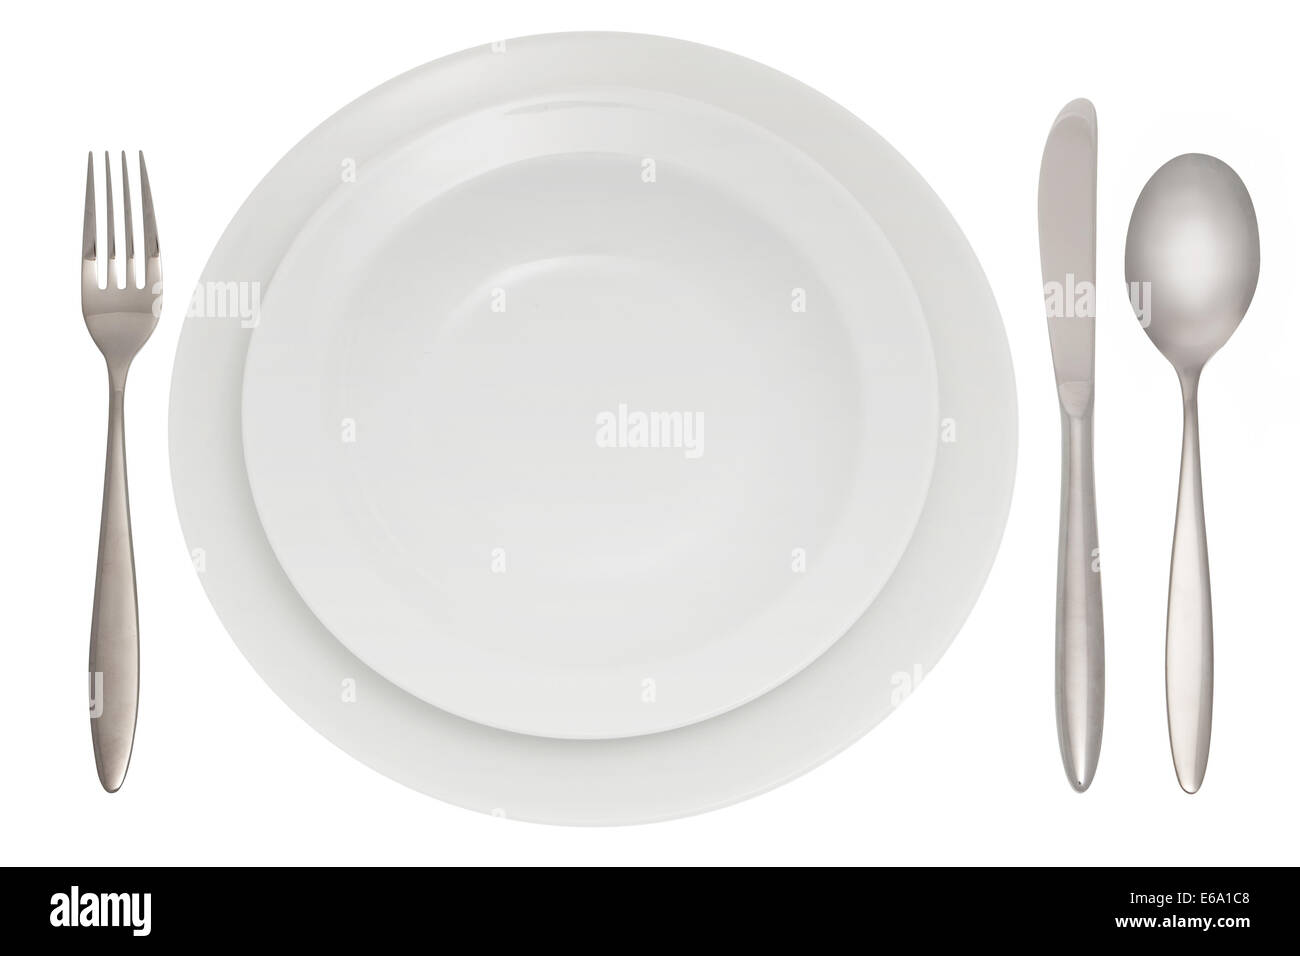 place settingcutlerytable cover  sc 1 st  Alamy & place settingcutlerytable cover Stock Photo: 72750056 - Alamy